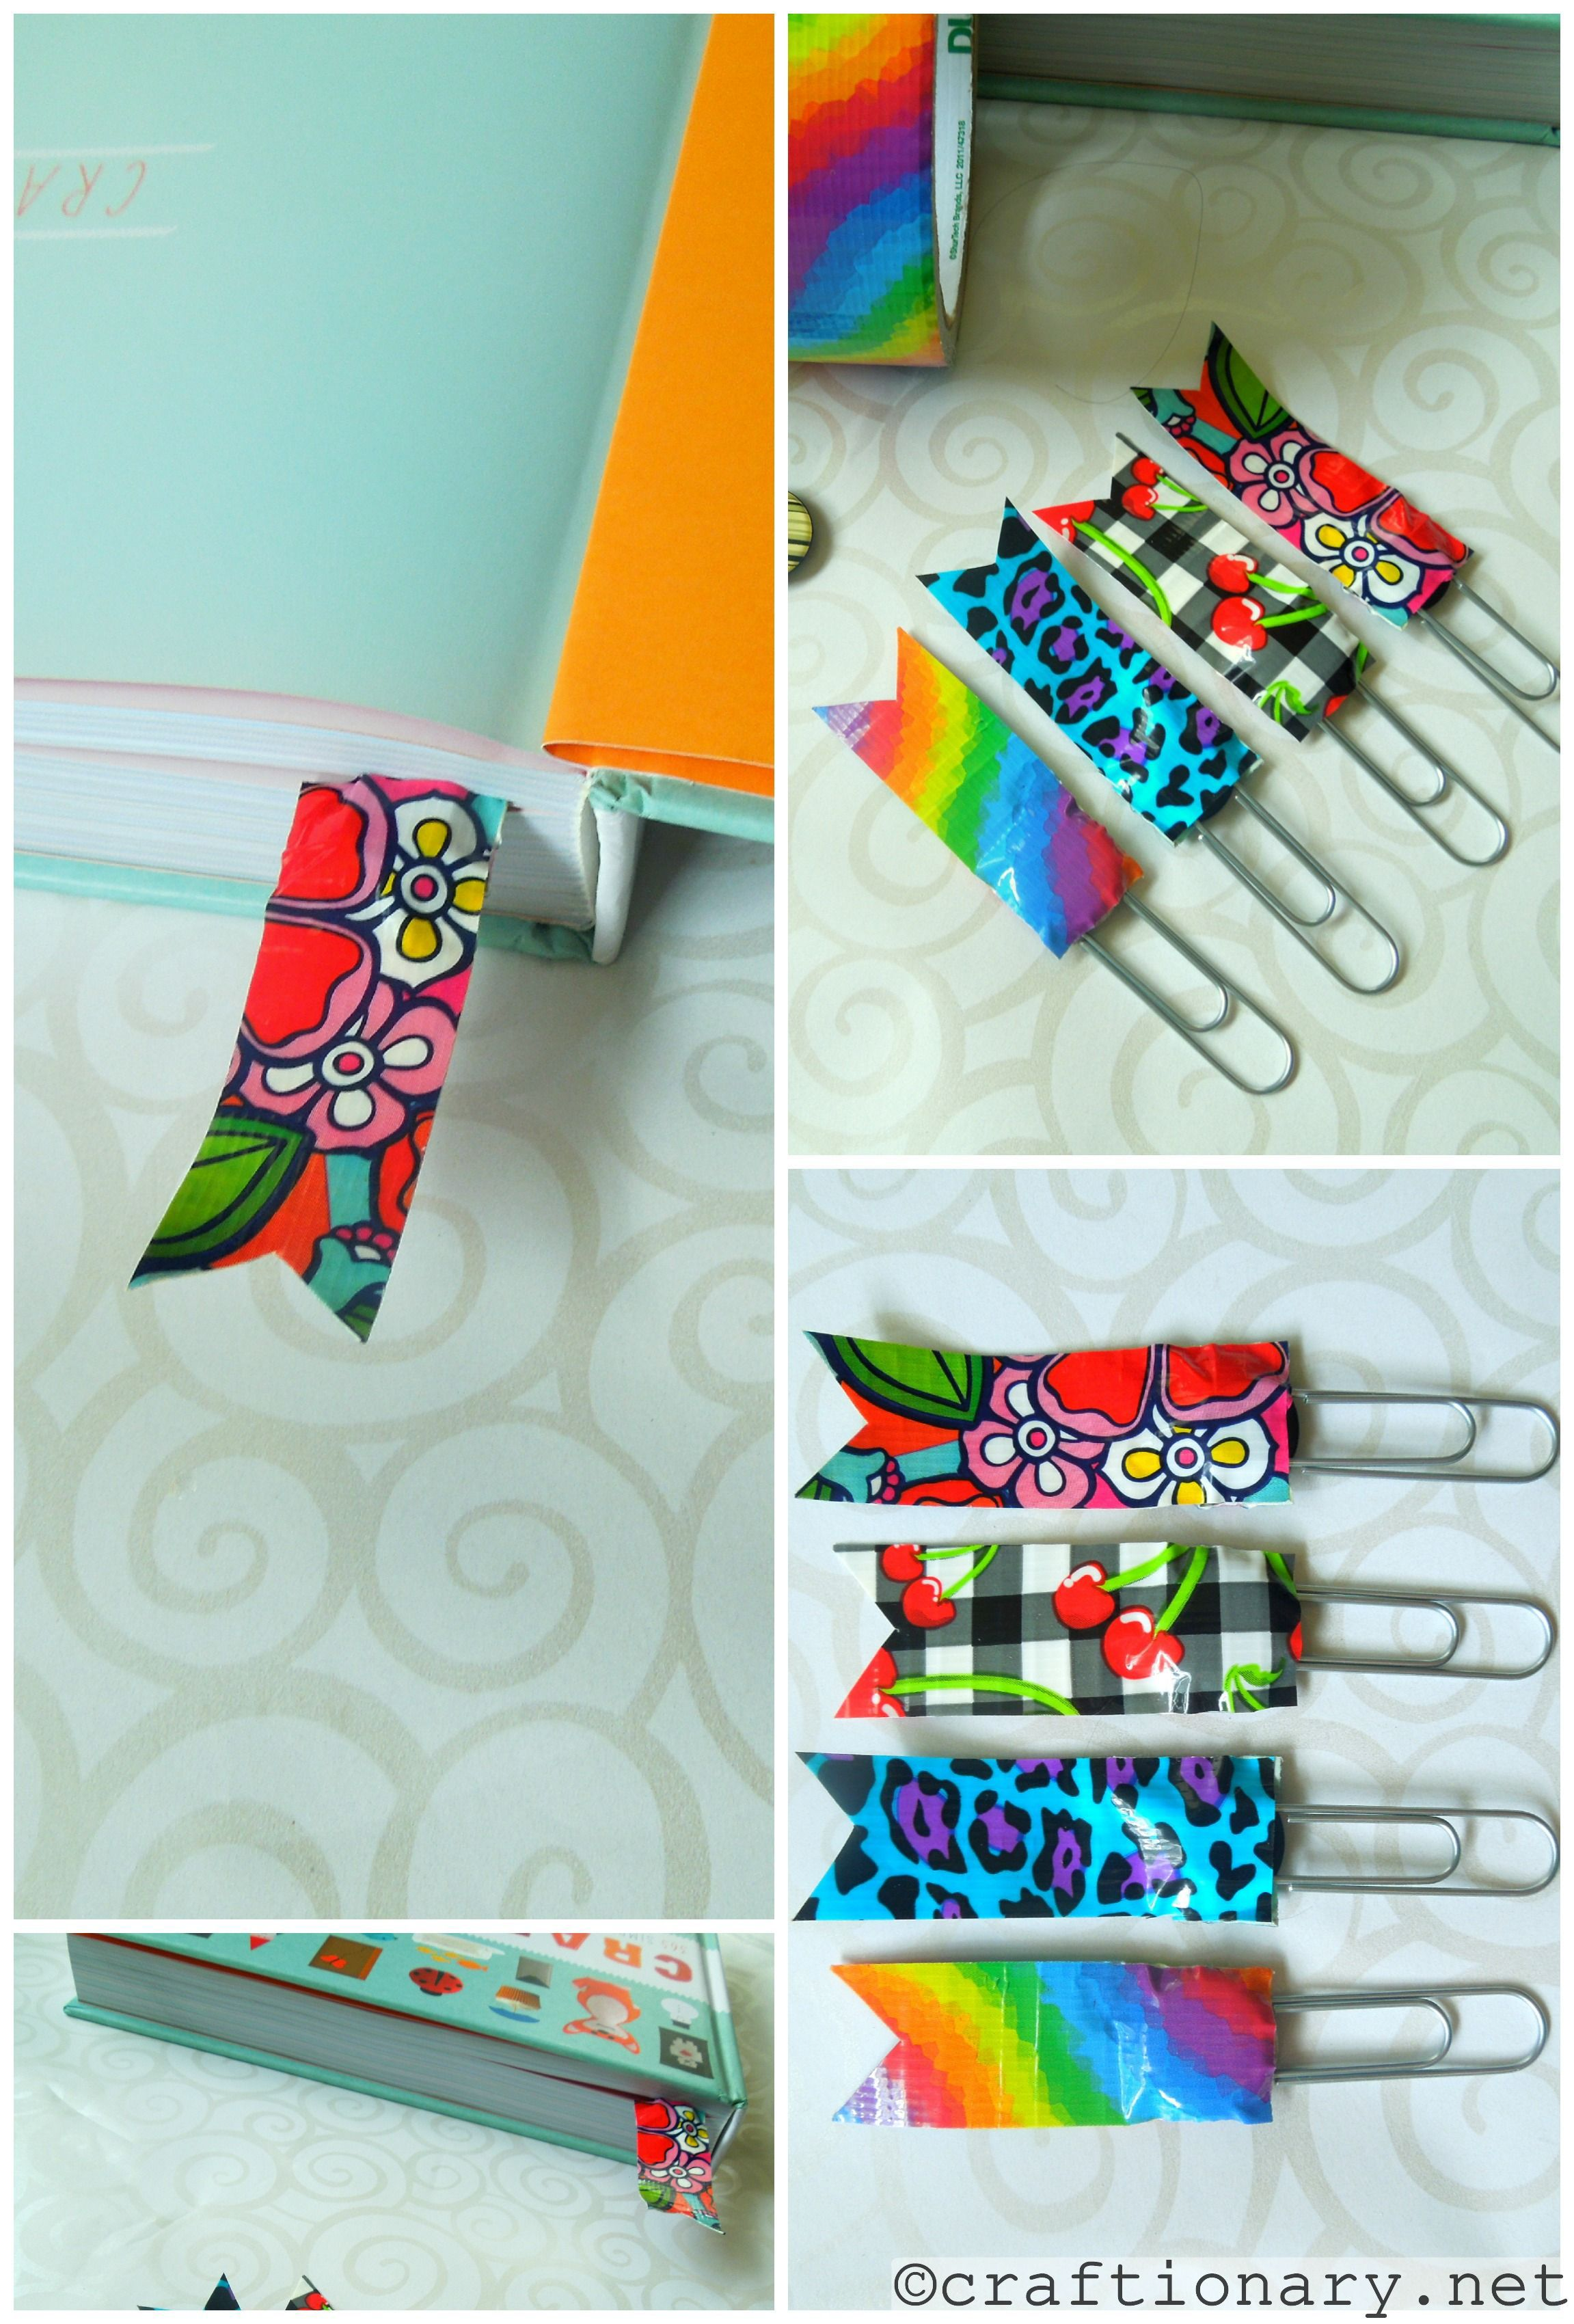 Diy duct tape ideas make simple crafts bookmark ideas for Duct tape bedroom ideas